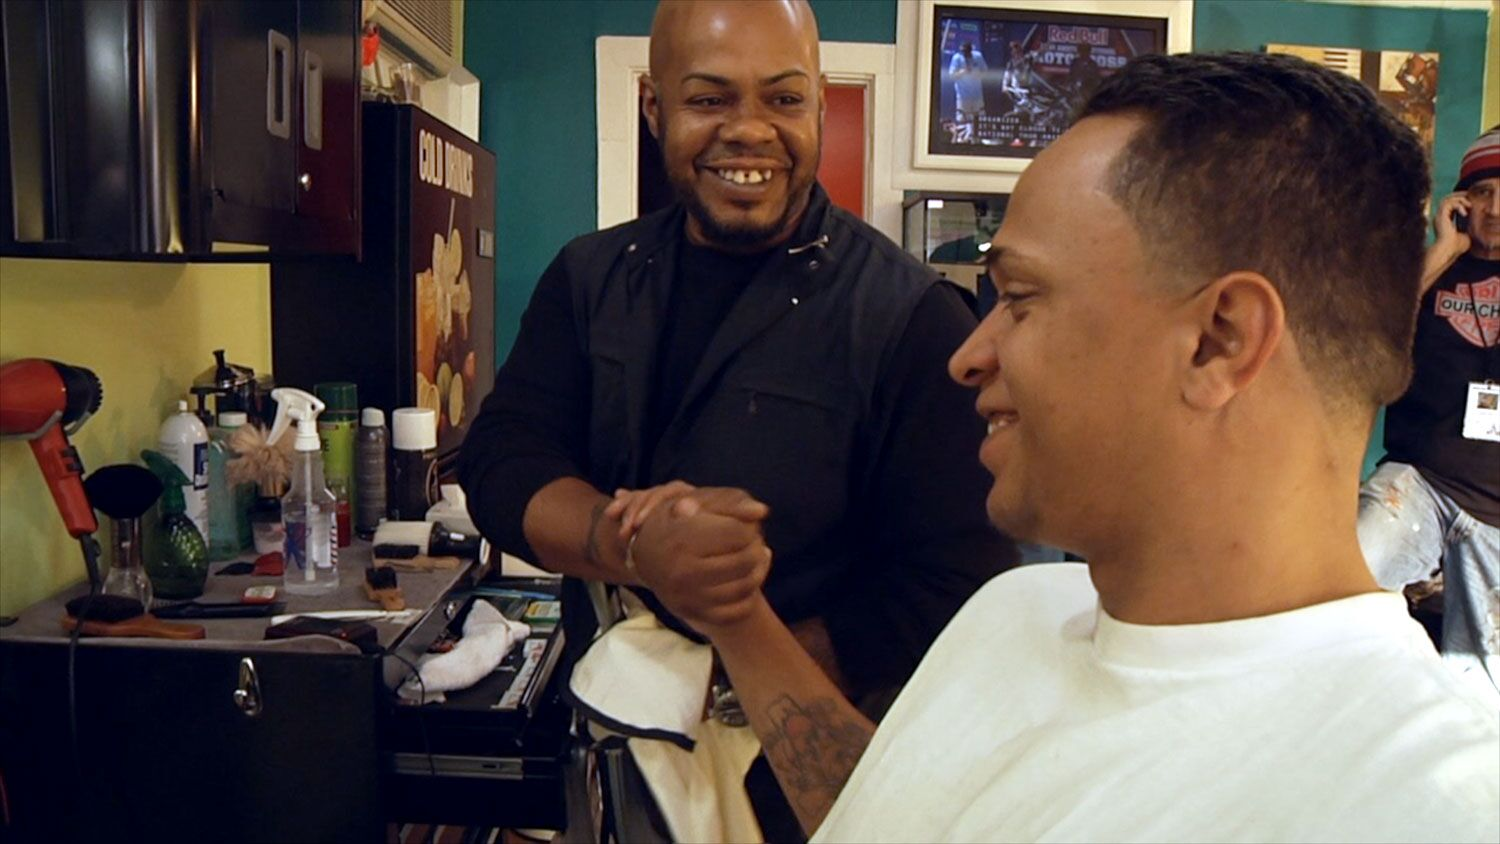 Billy Cabrera shakes hands with Jesus Ruiz in the barber shop.